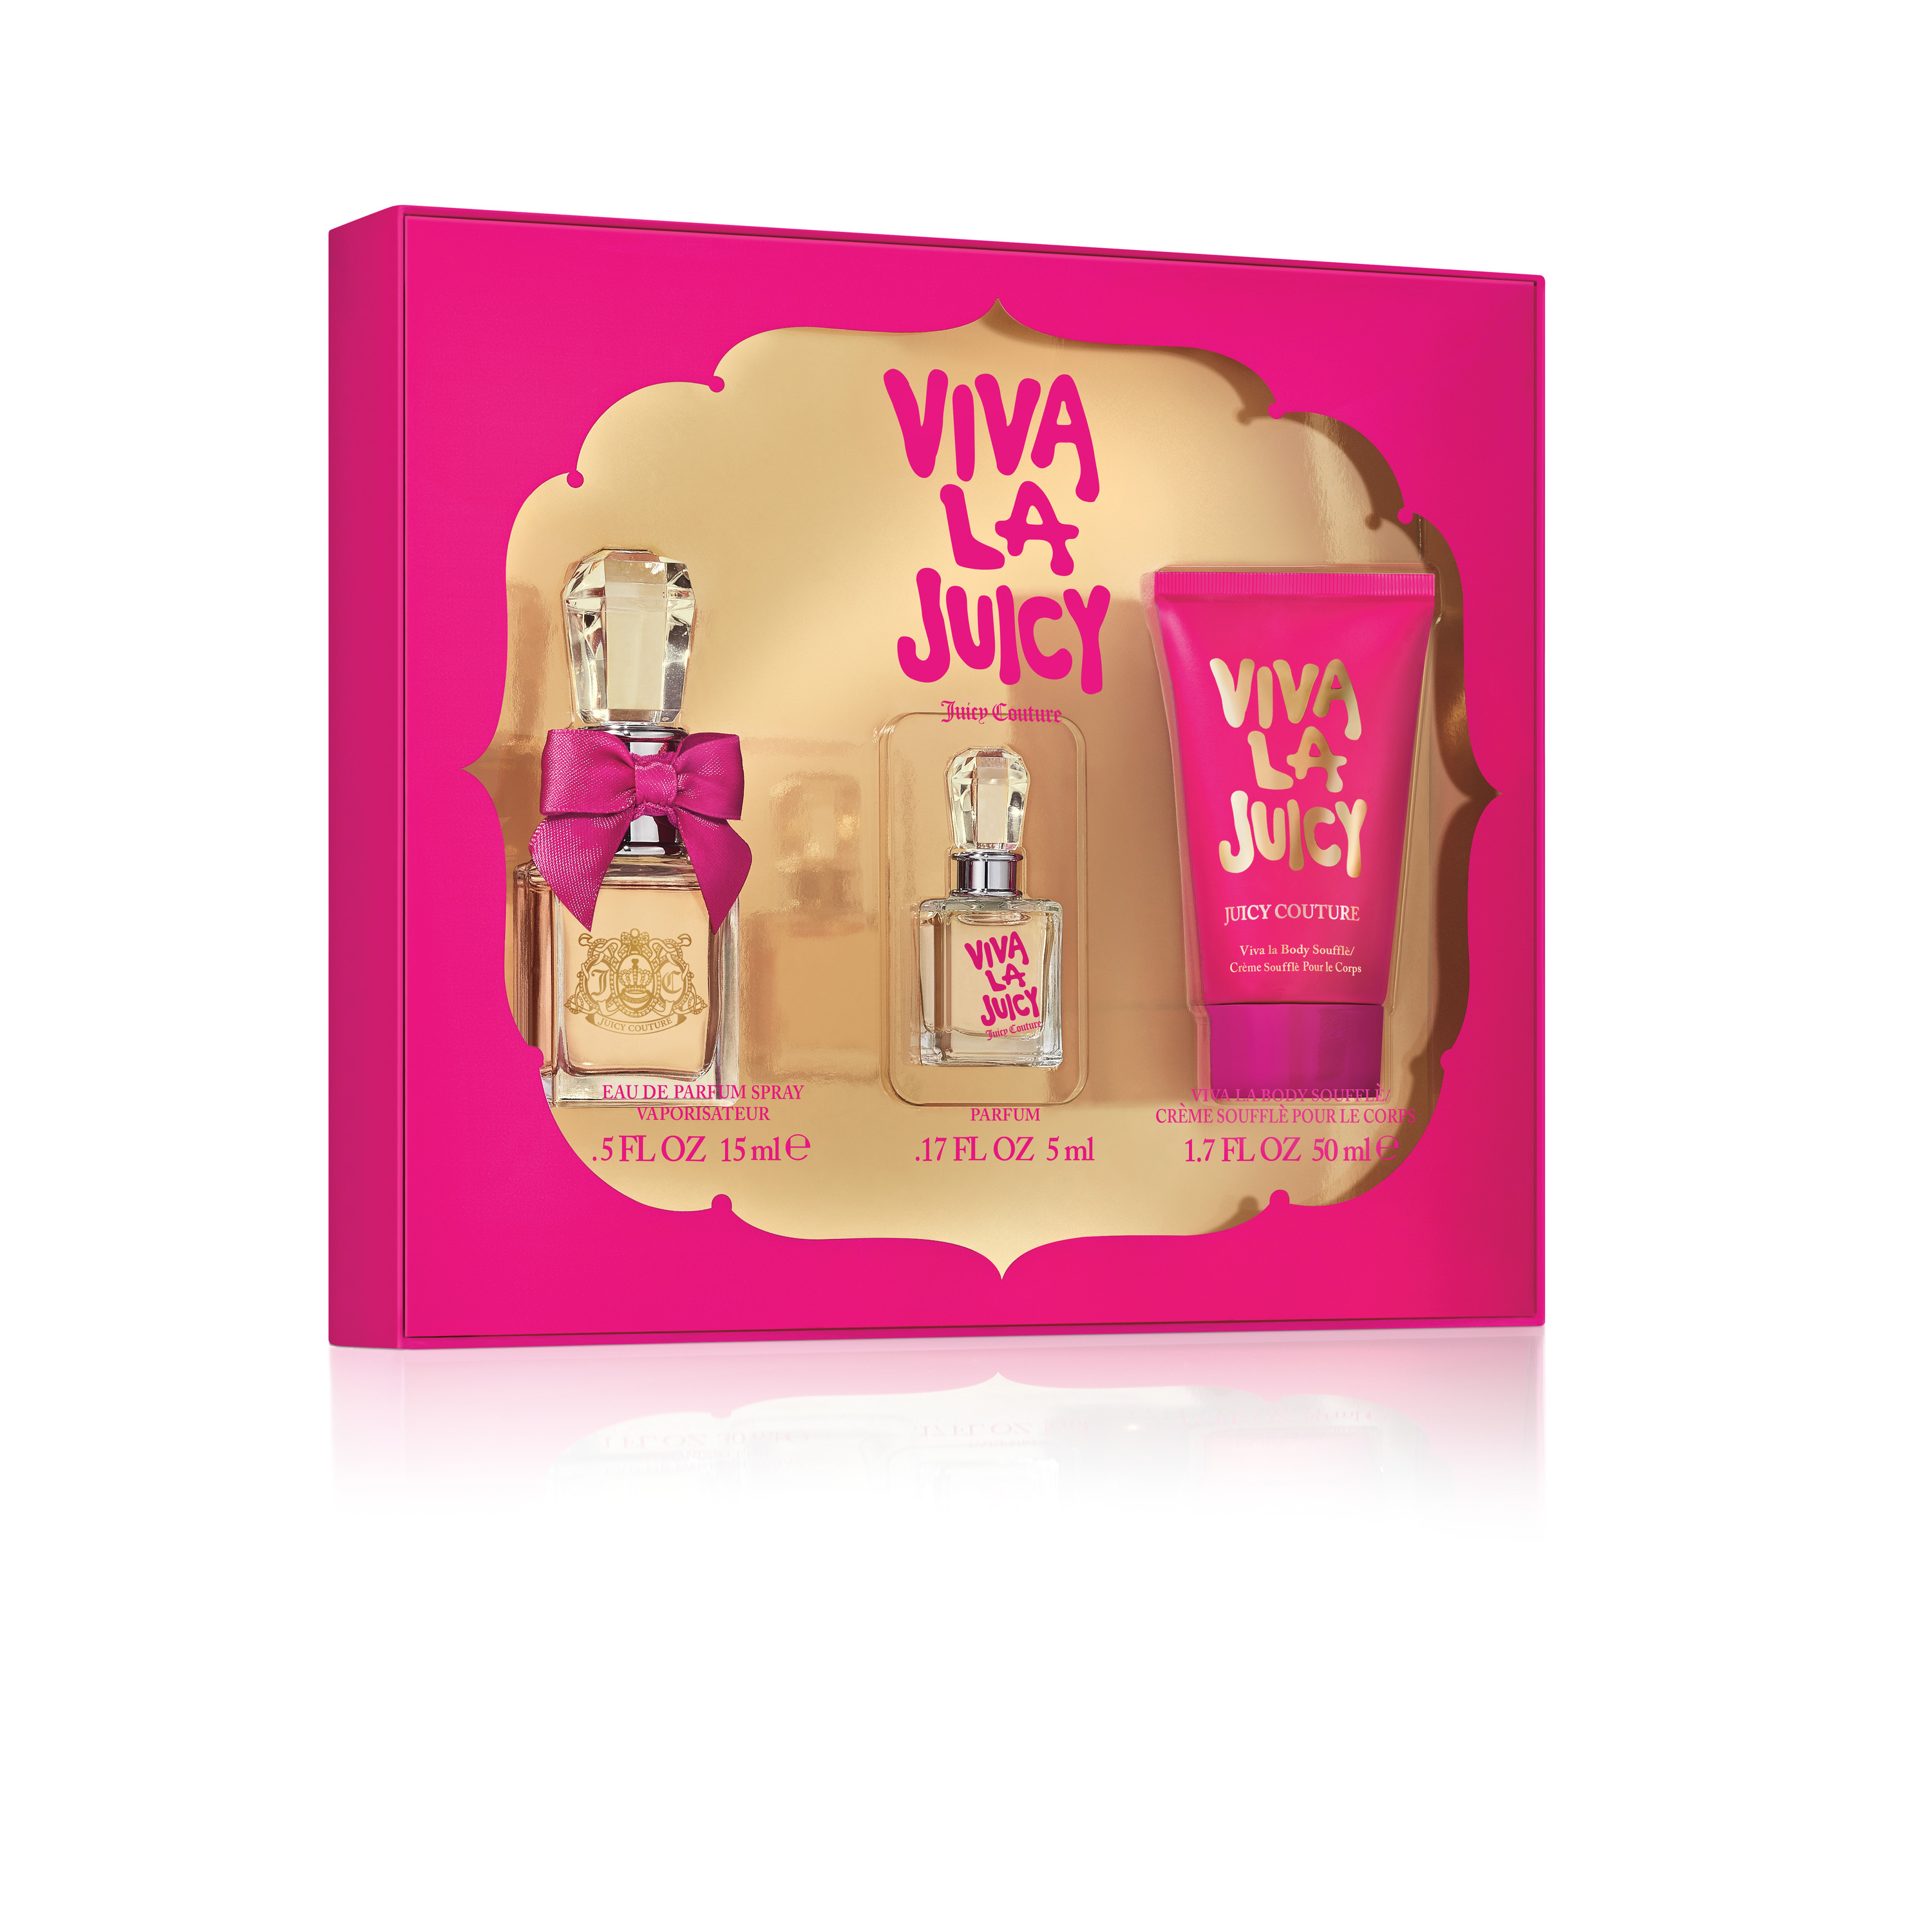 Juicy Couture Viva La Juicy Perfume Gift Set For Women, 3 Piece